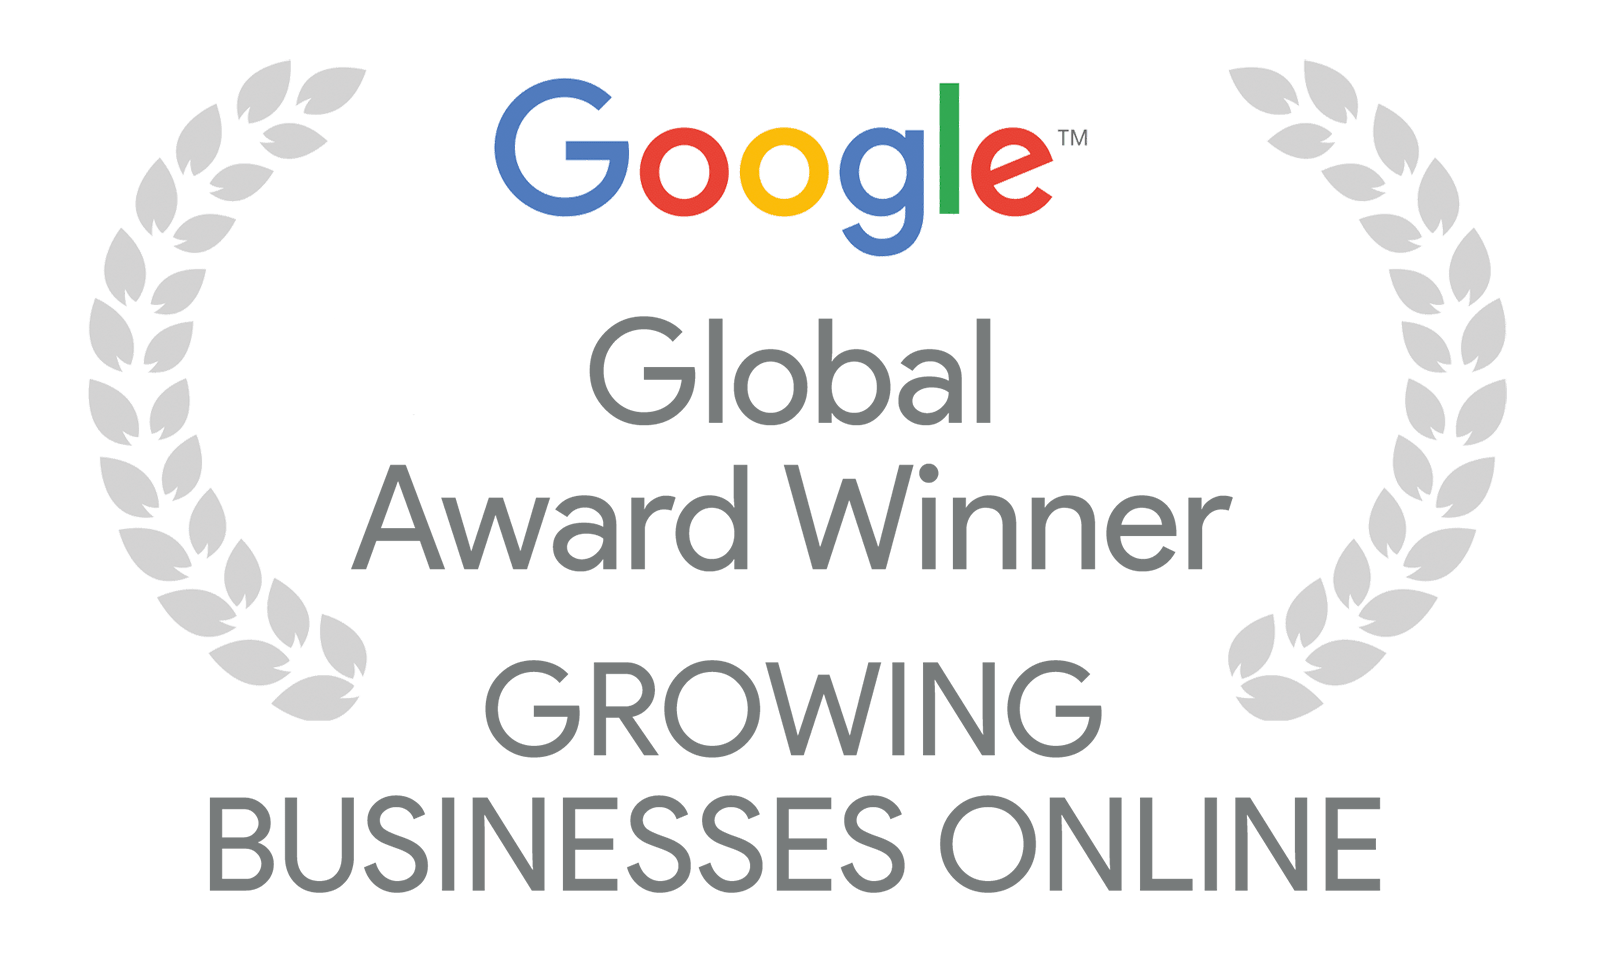 Google Global Award Winner